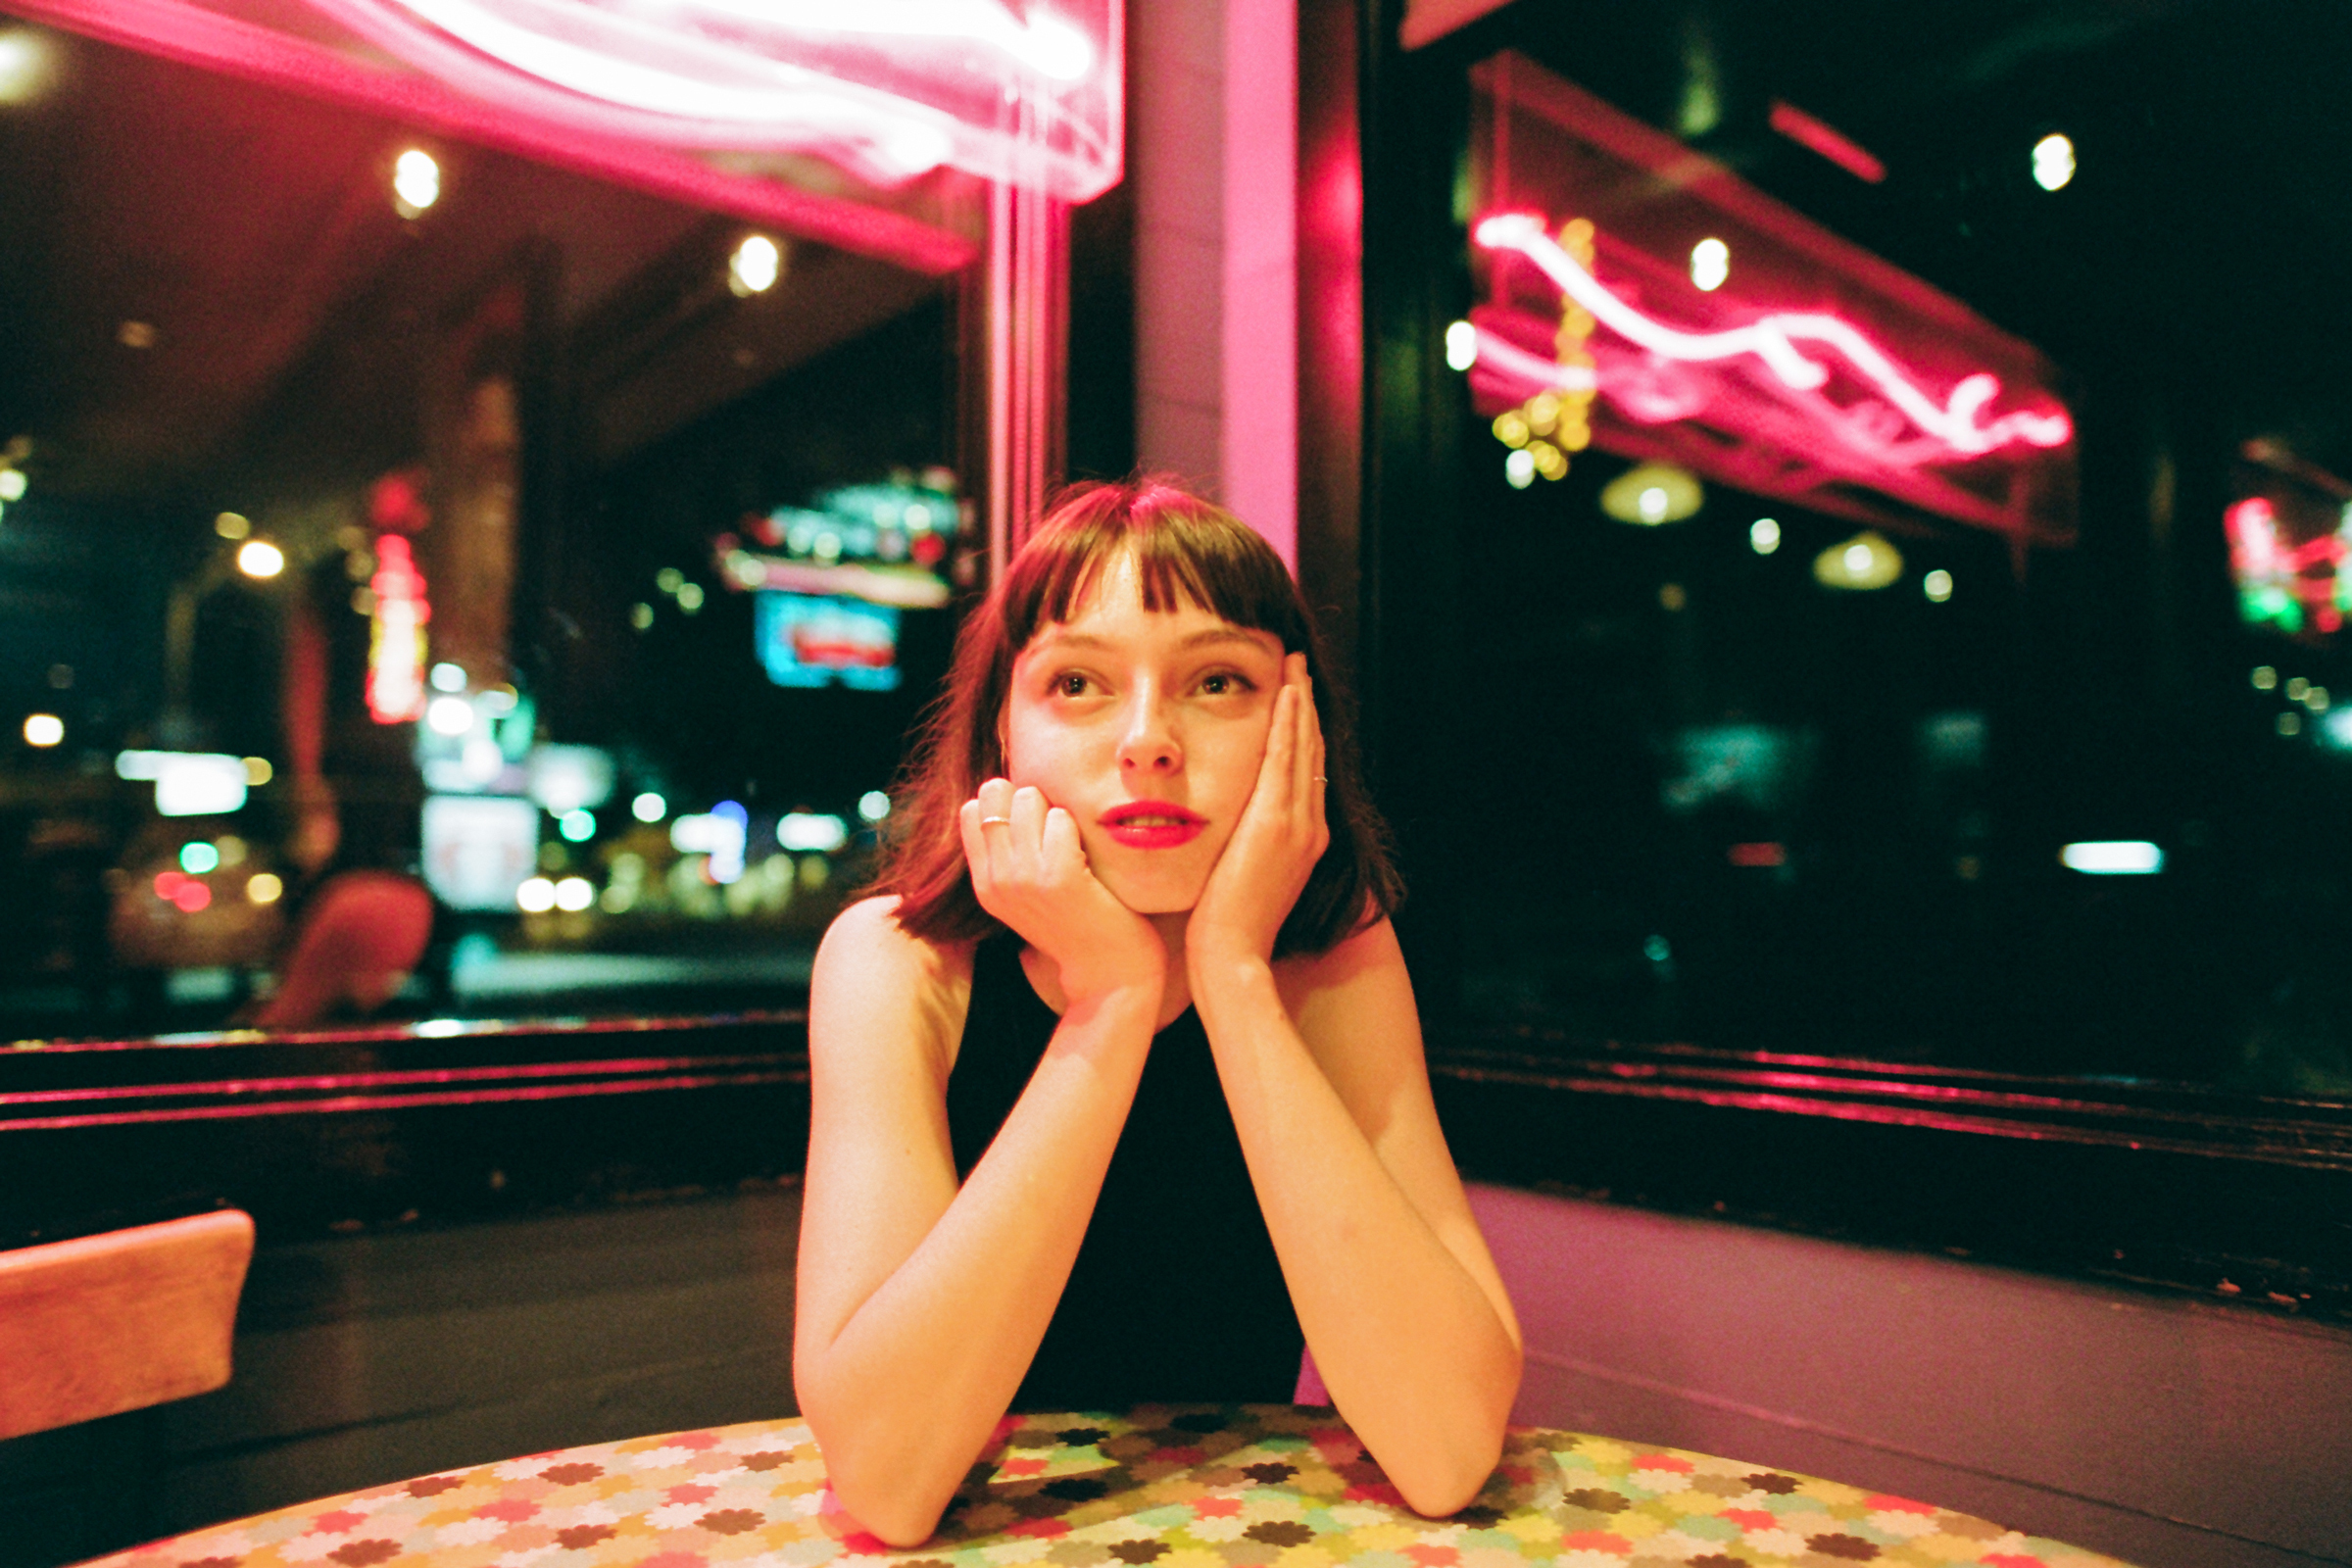 Stella Donnelly / Beware of the Dogs(Ltd Japanese Edition LP)